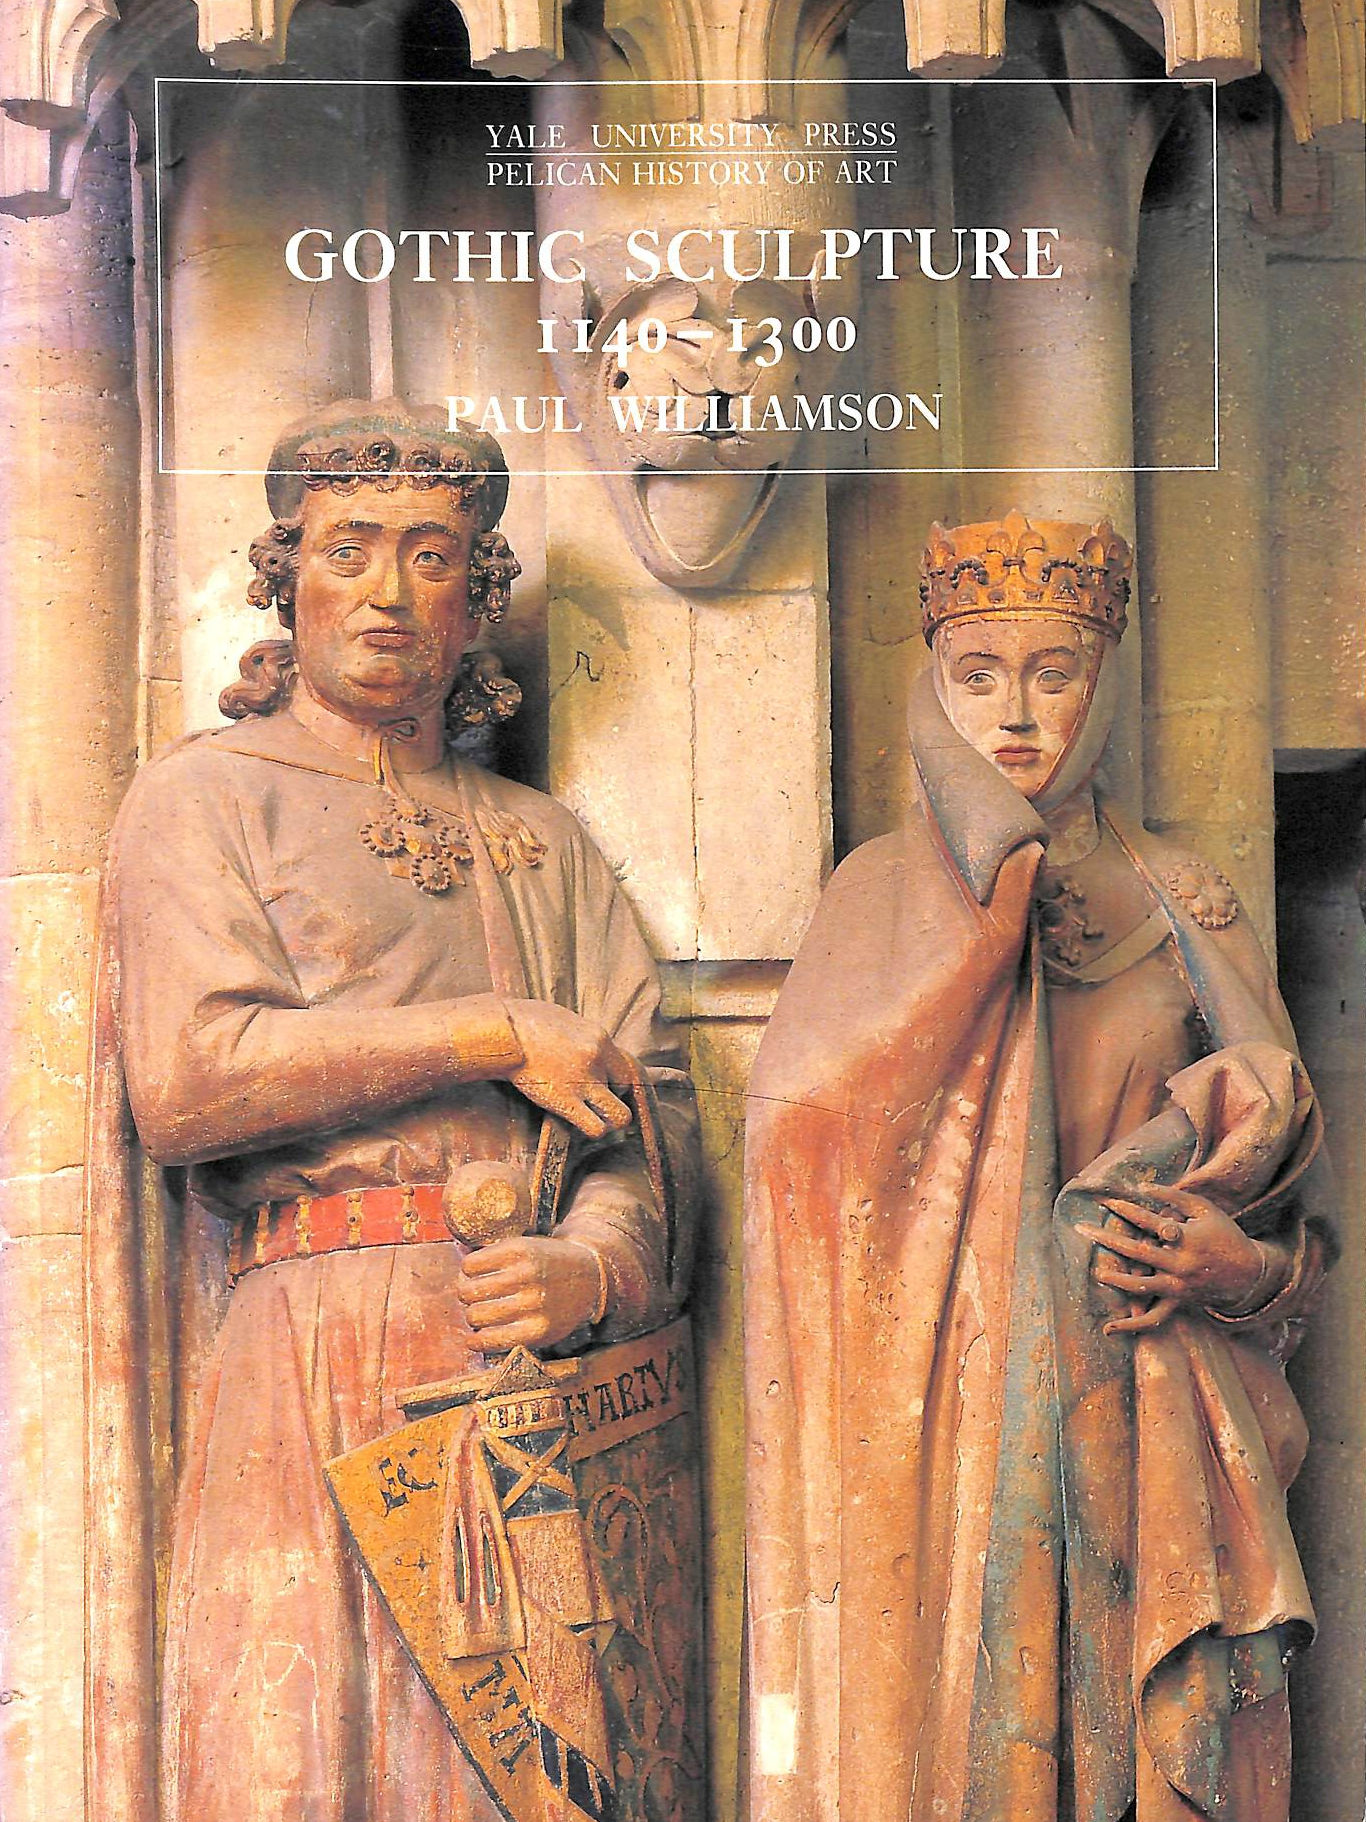 Image for Gothic Sculpture, 1140-1300 (The Yale University Press Pelican History of Art Series)